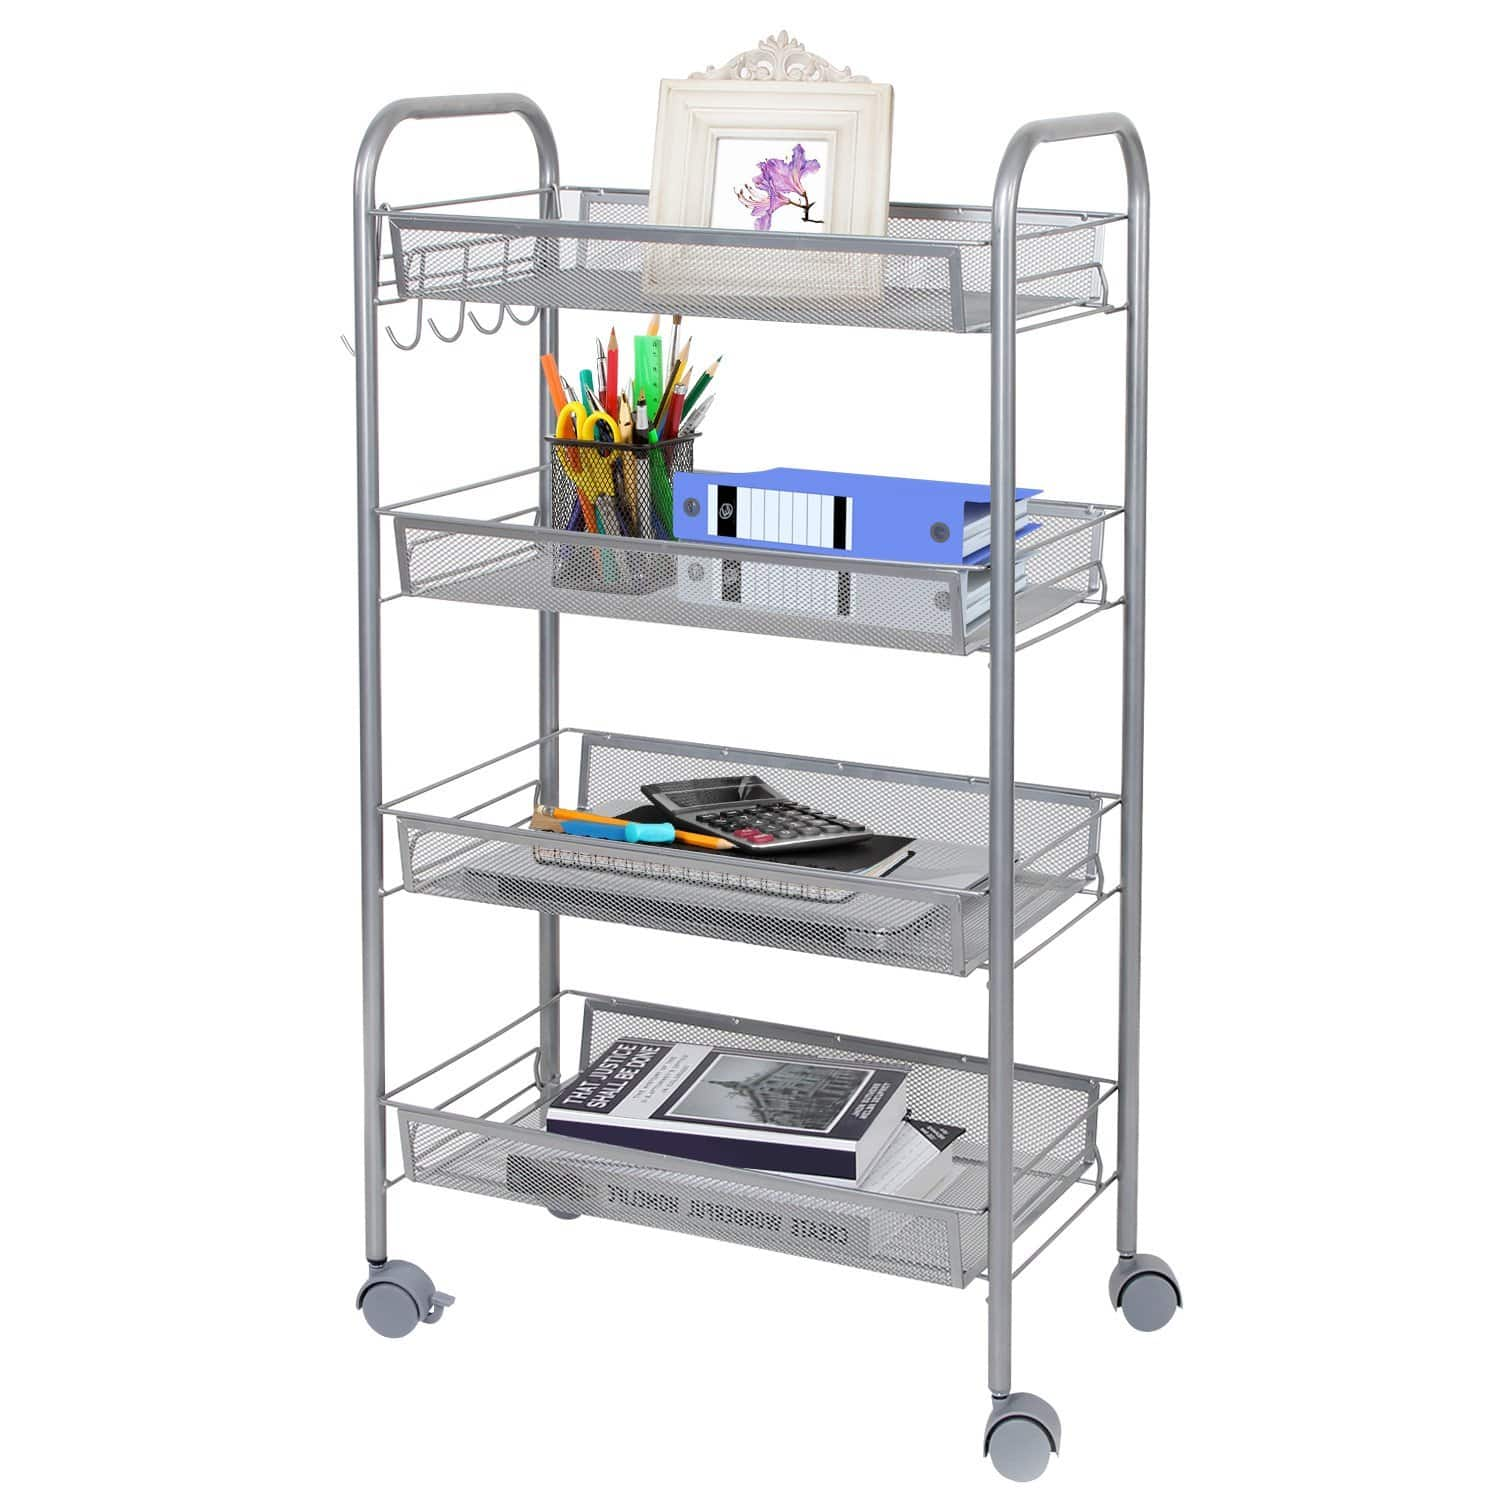 Mesh Rolling Storage Cart with 4 Baskets and Hooks, Kitchen and Bathroom Organization Shelf $29.76 a/c + Free Amazon Prime shipping